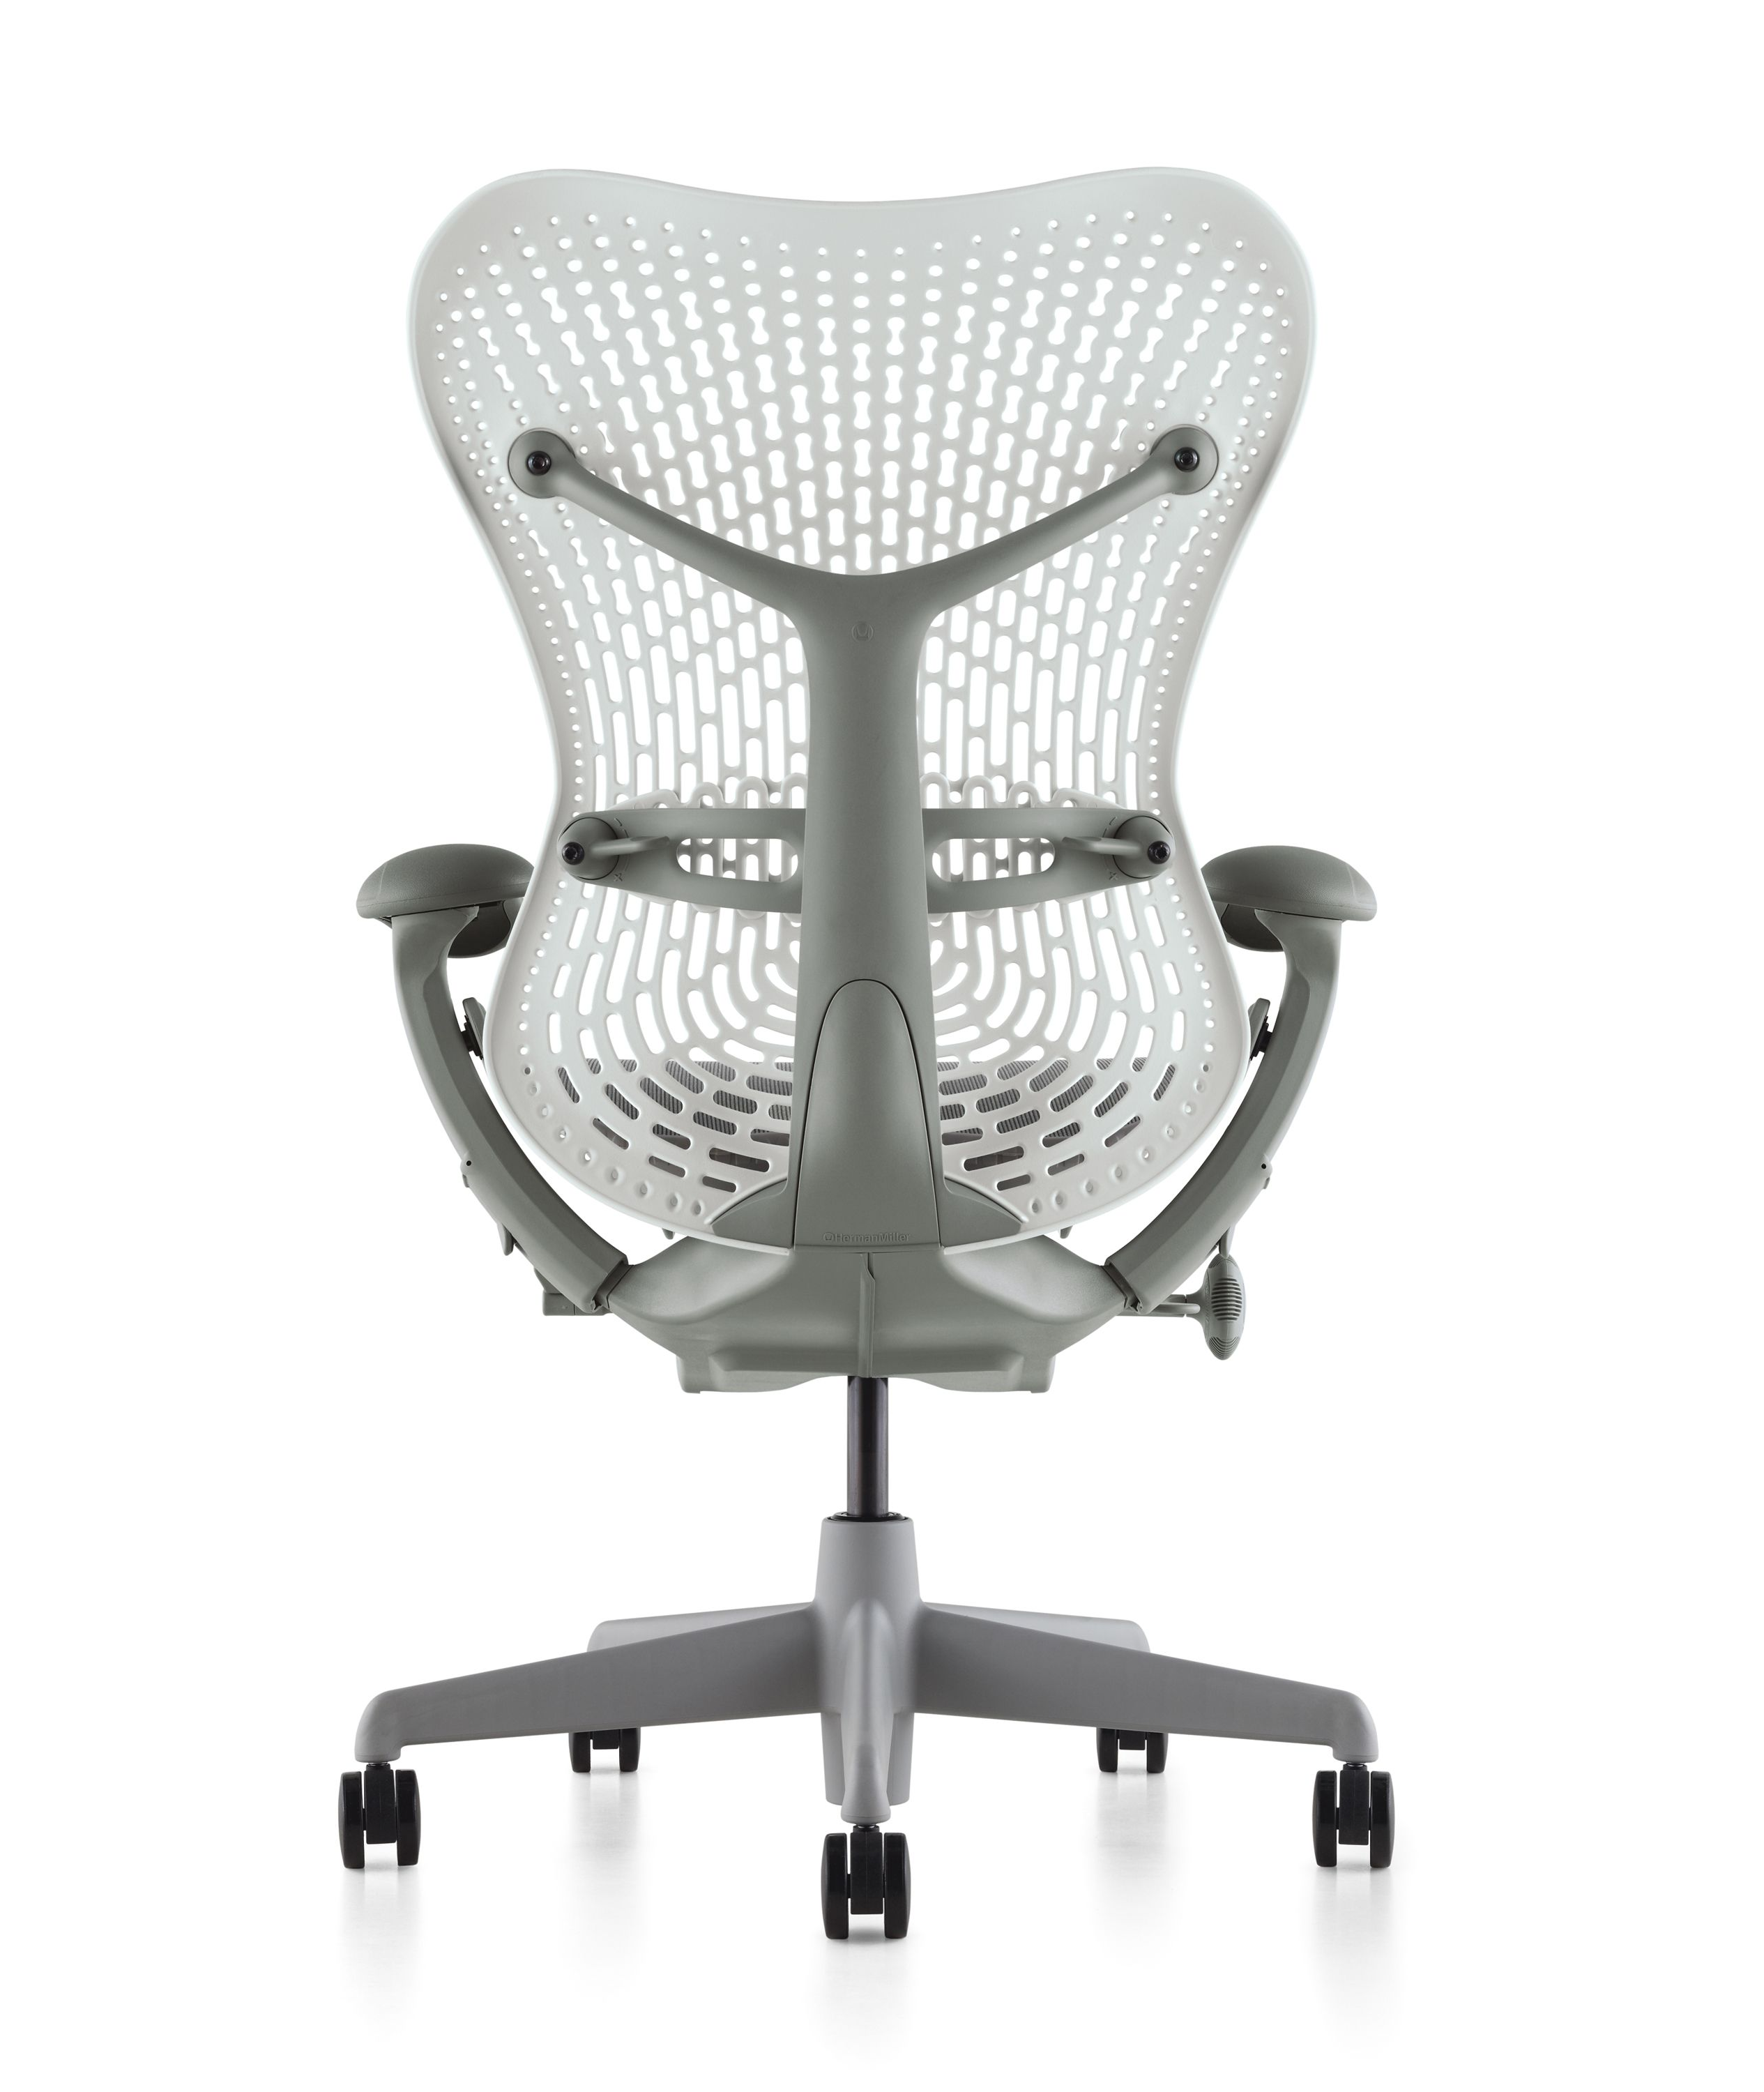 Studio 7 5 Mirra fice Chair for Herman Miller